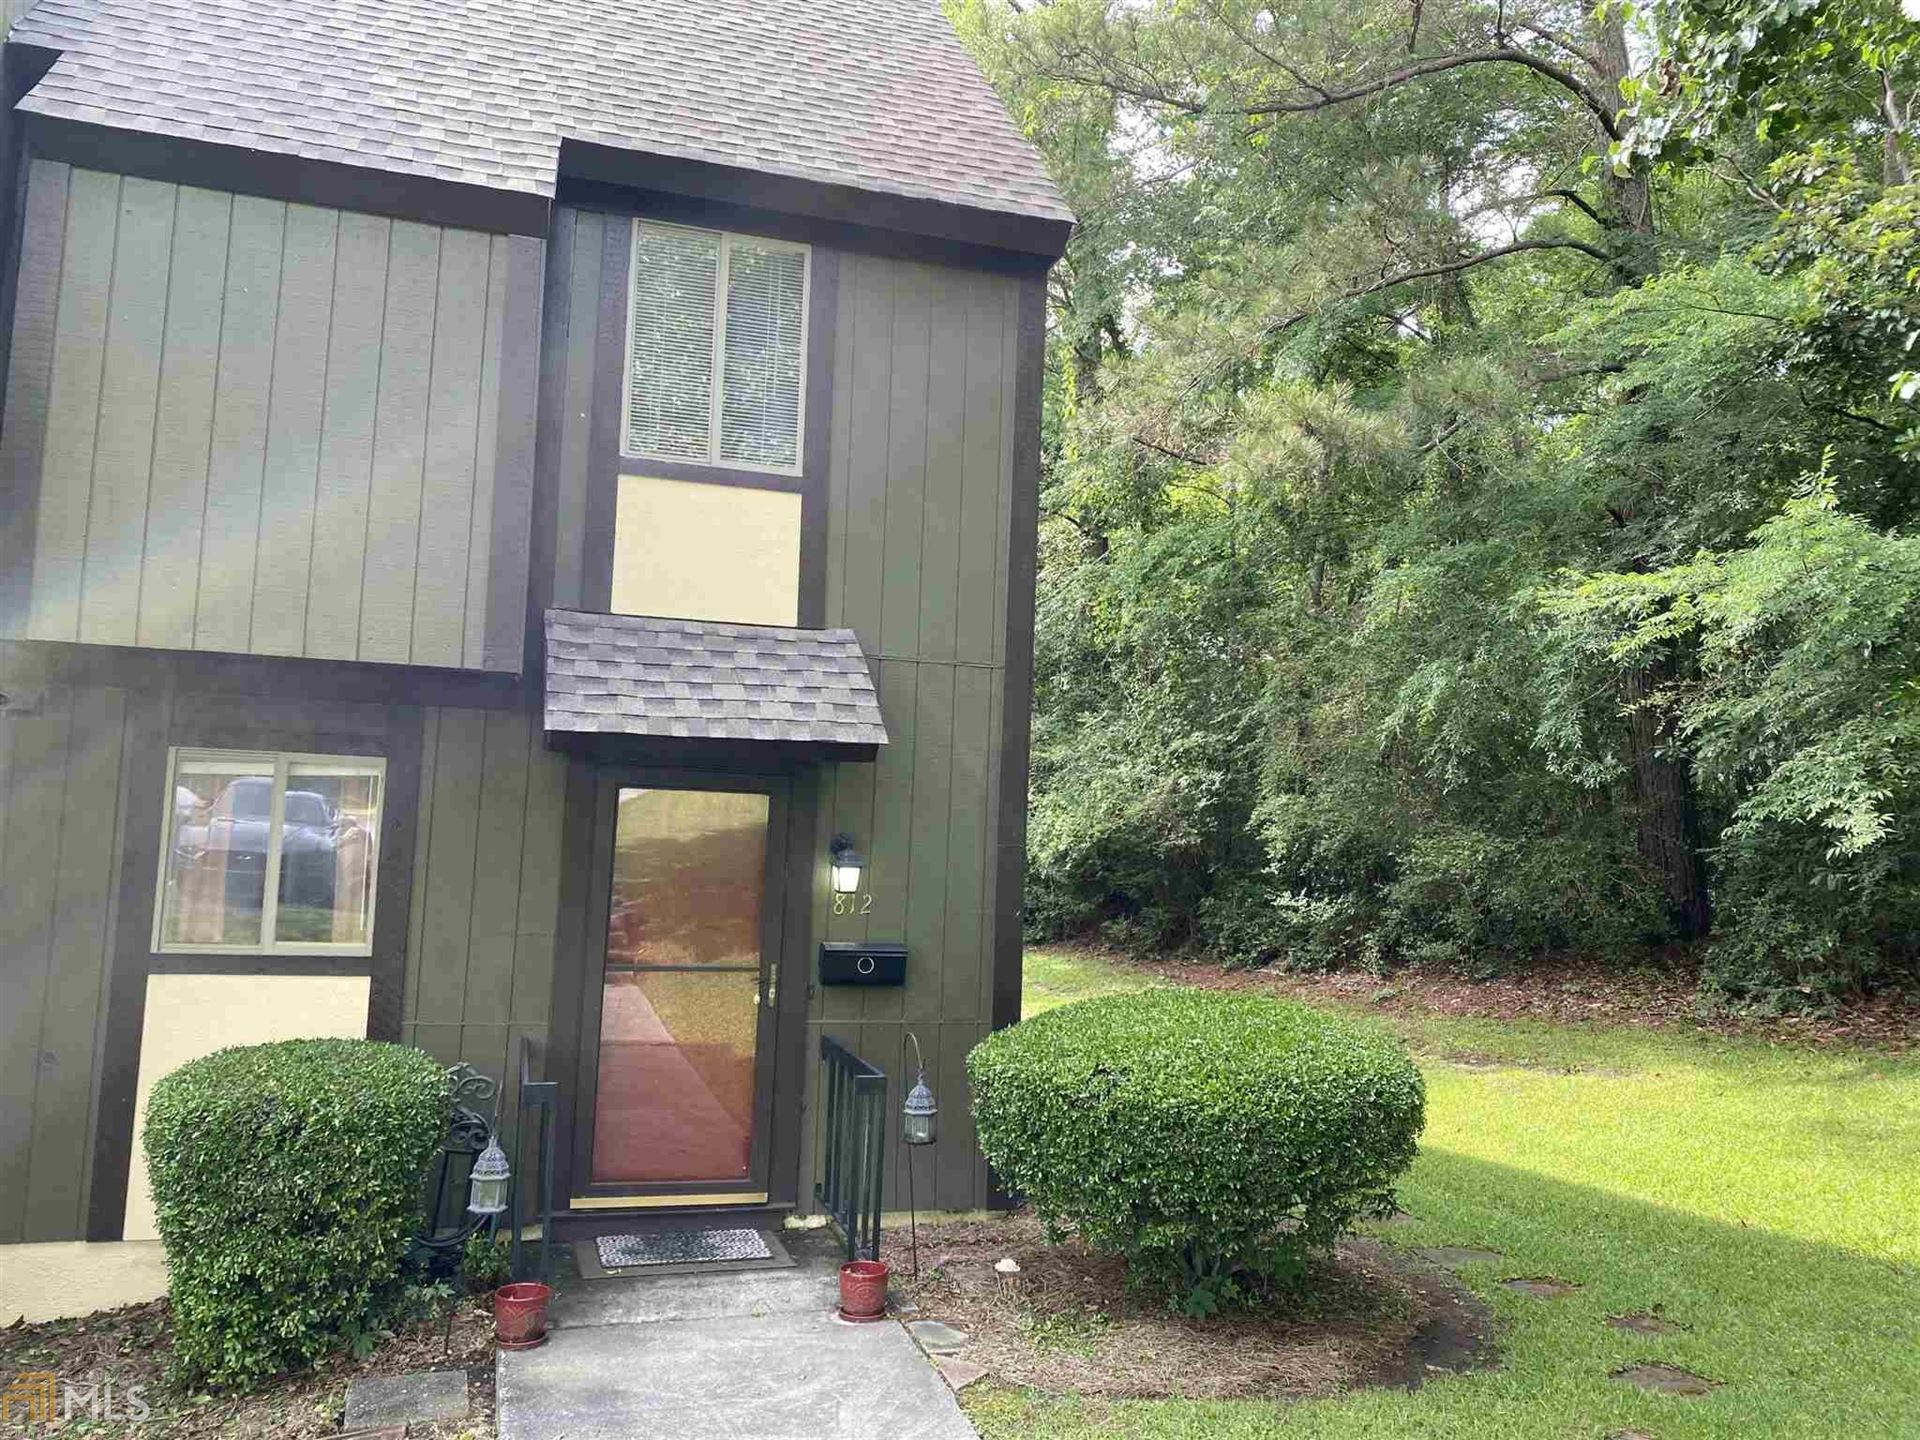 812 Willow Creek Dr, Macon, GA 31204 - MLS#: 8975988